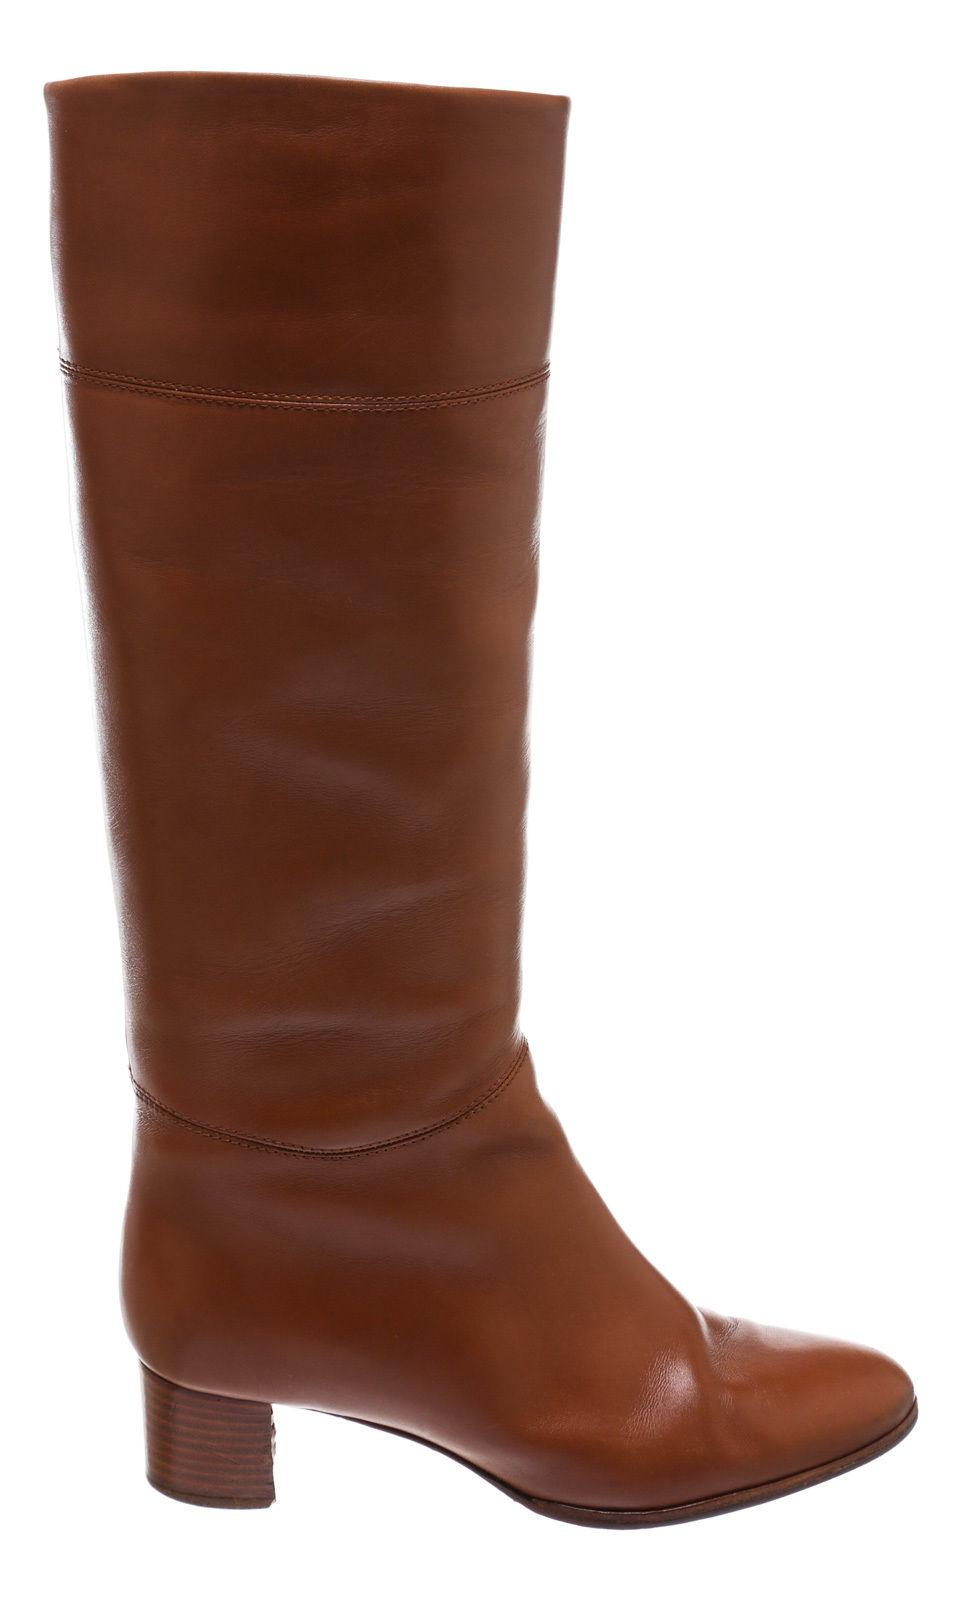 0ff0519dea3 ... Christian Louboutin Tan Leather Tall 39) 39) 39) 207514 Boots Booties  Size ...